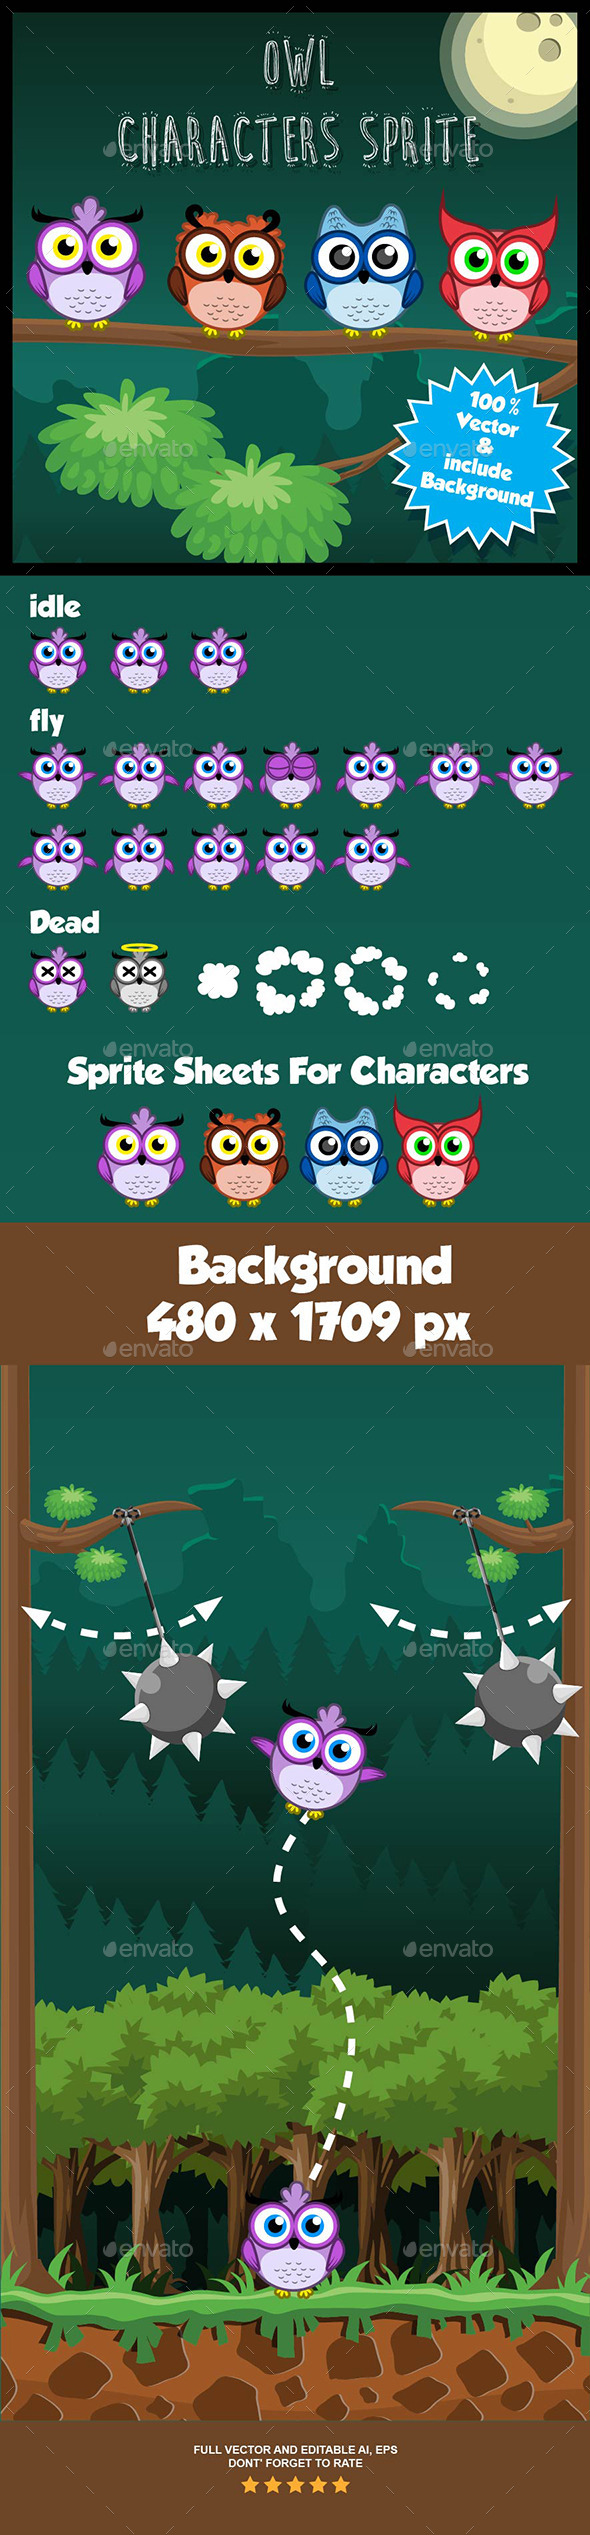 GraphicRiver Owl Character Spritesheets 9196887